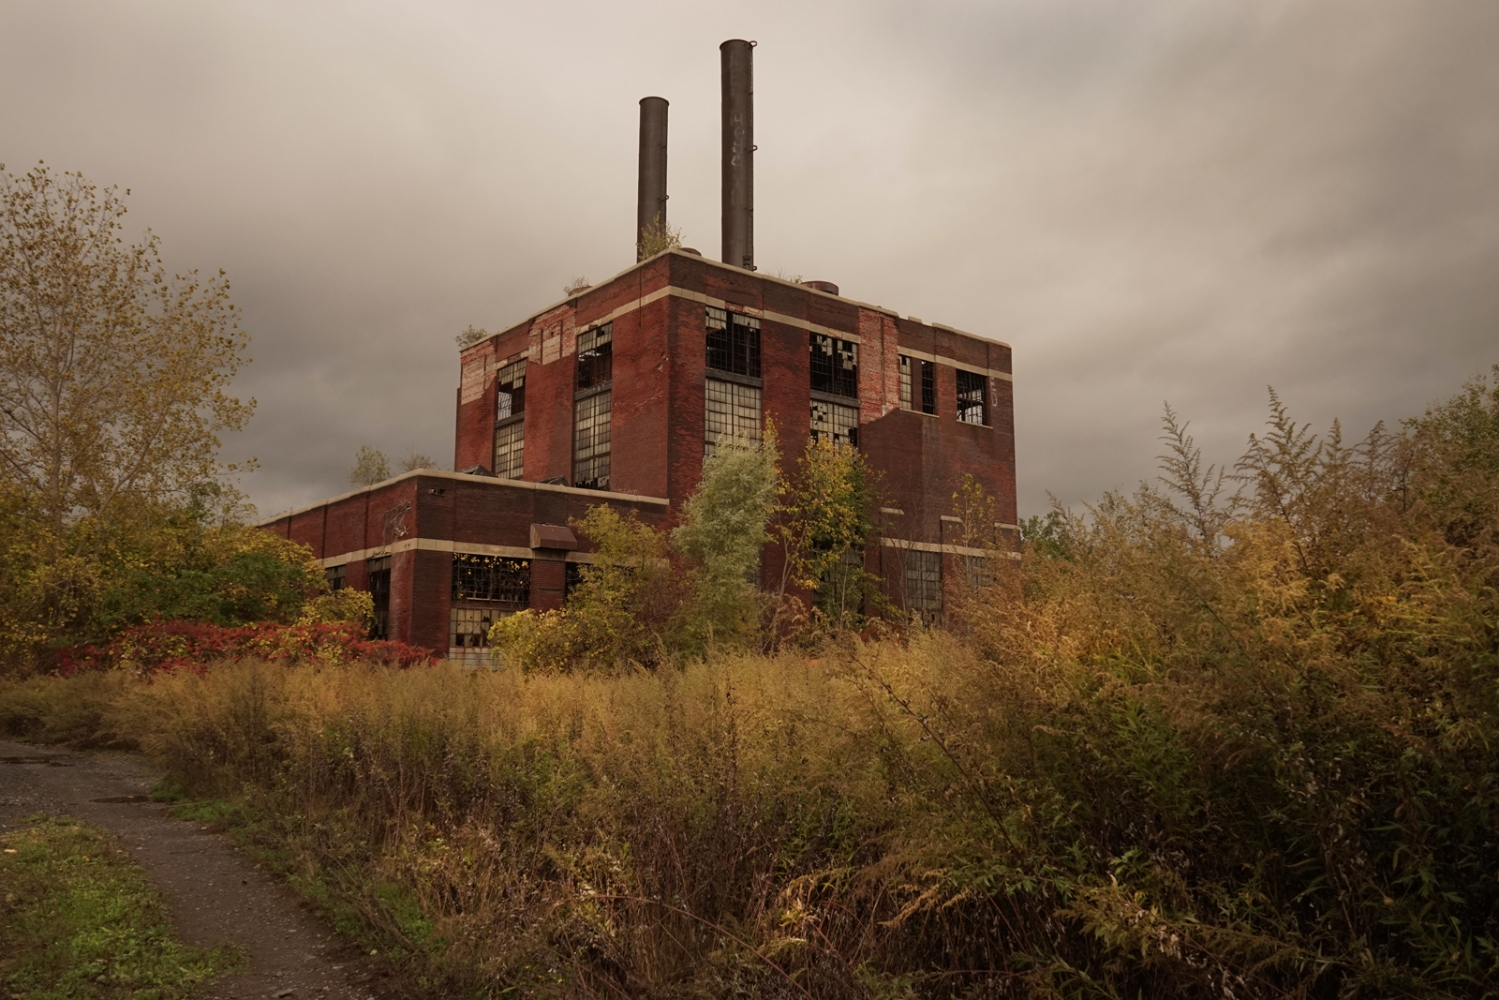 The former Beaunit Power plant, Broad Street< Utica, NY